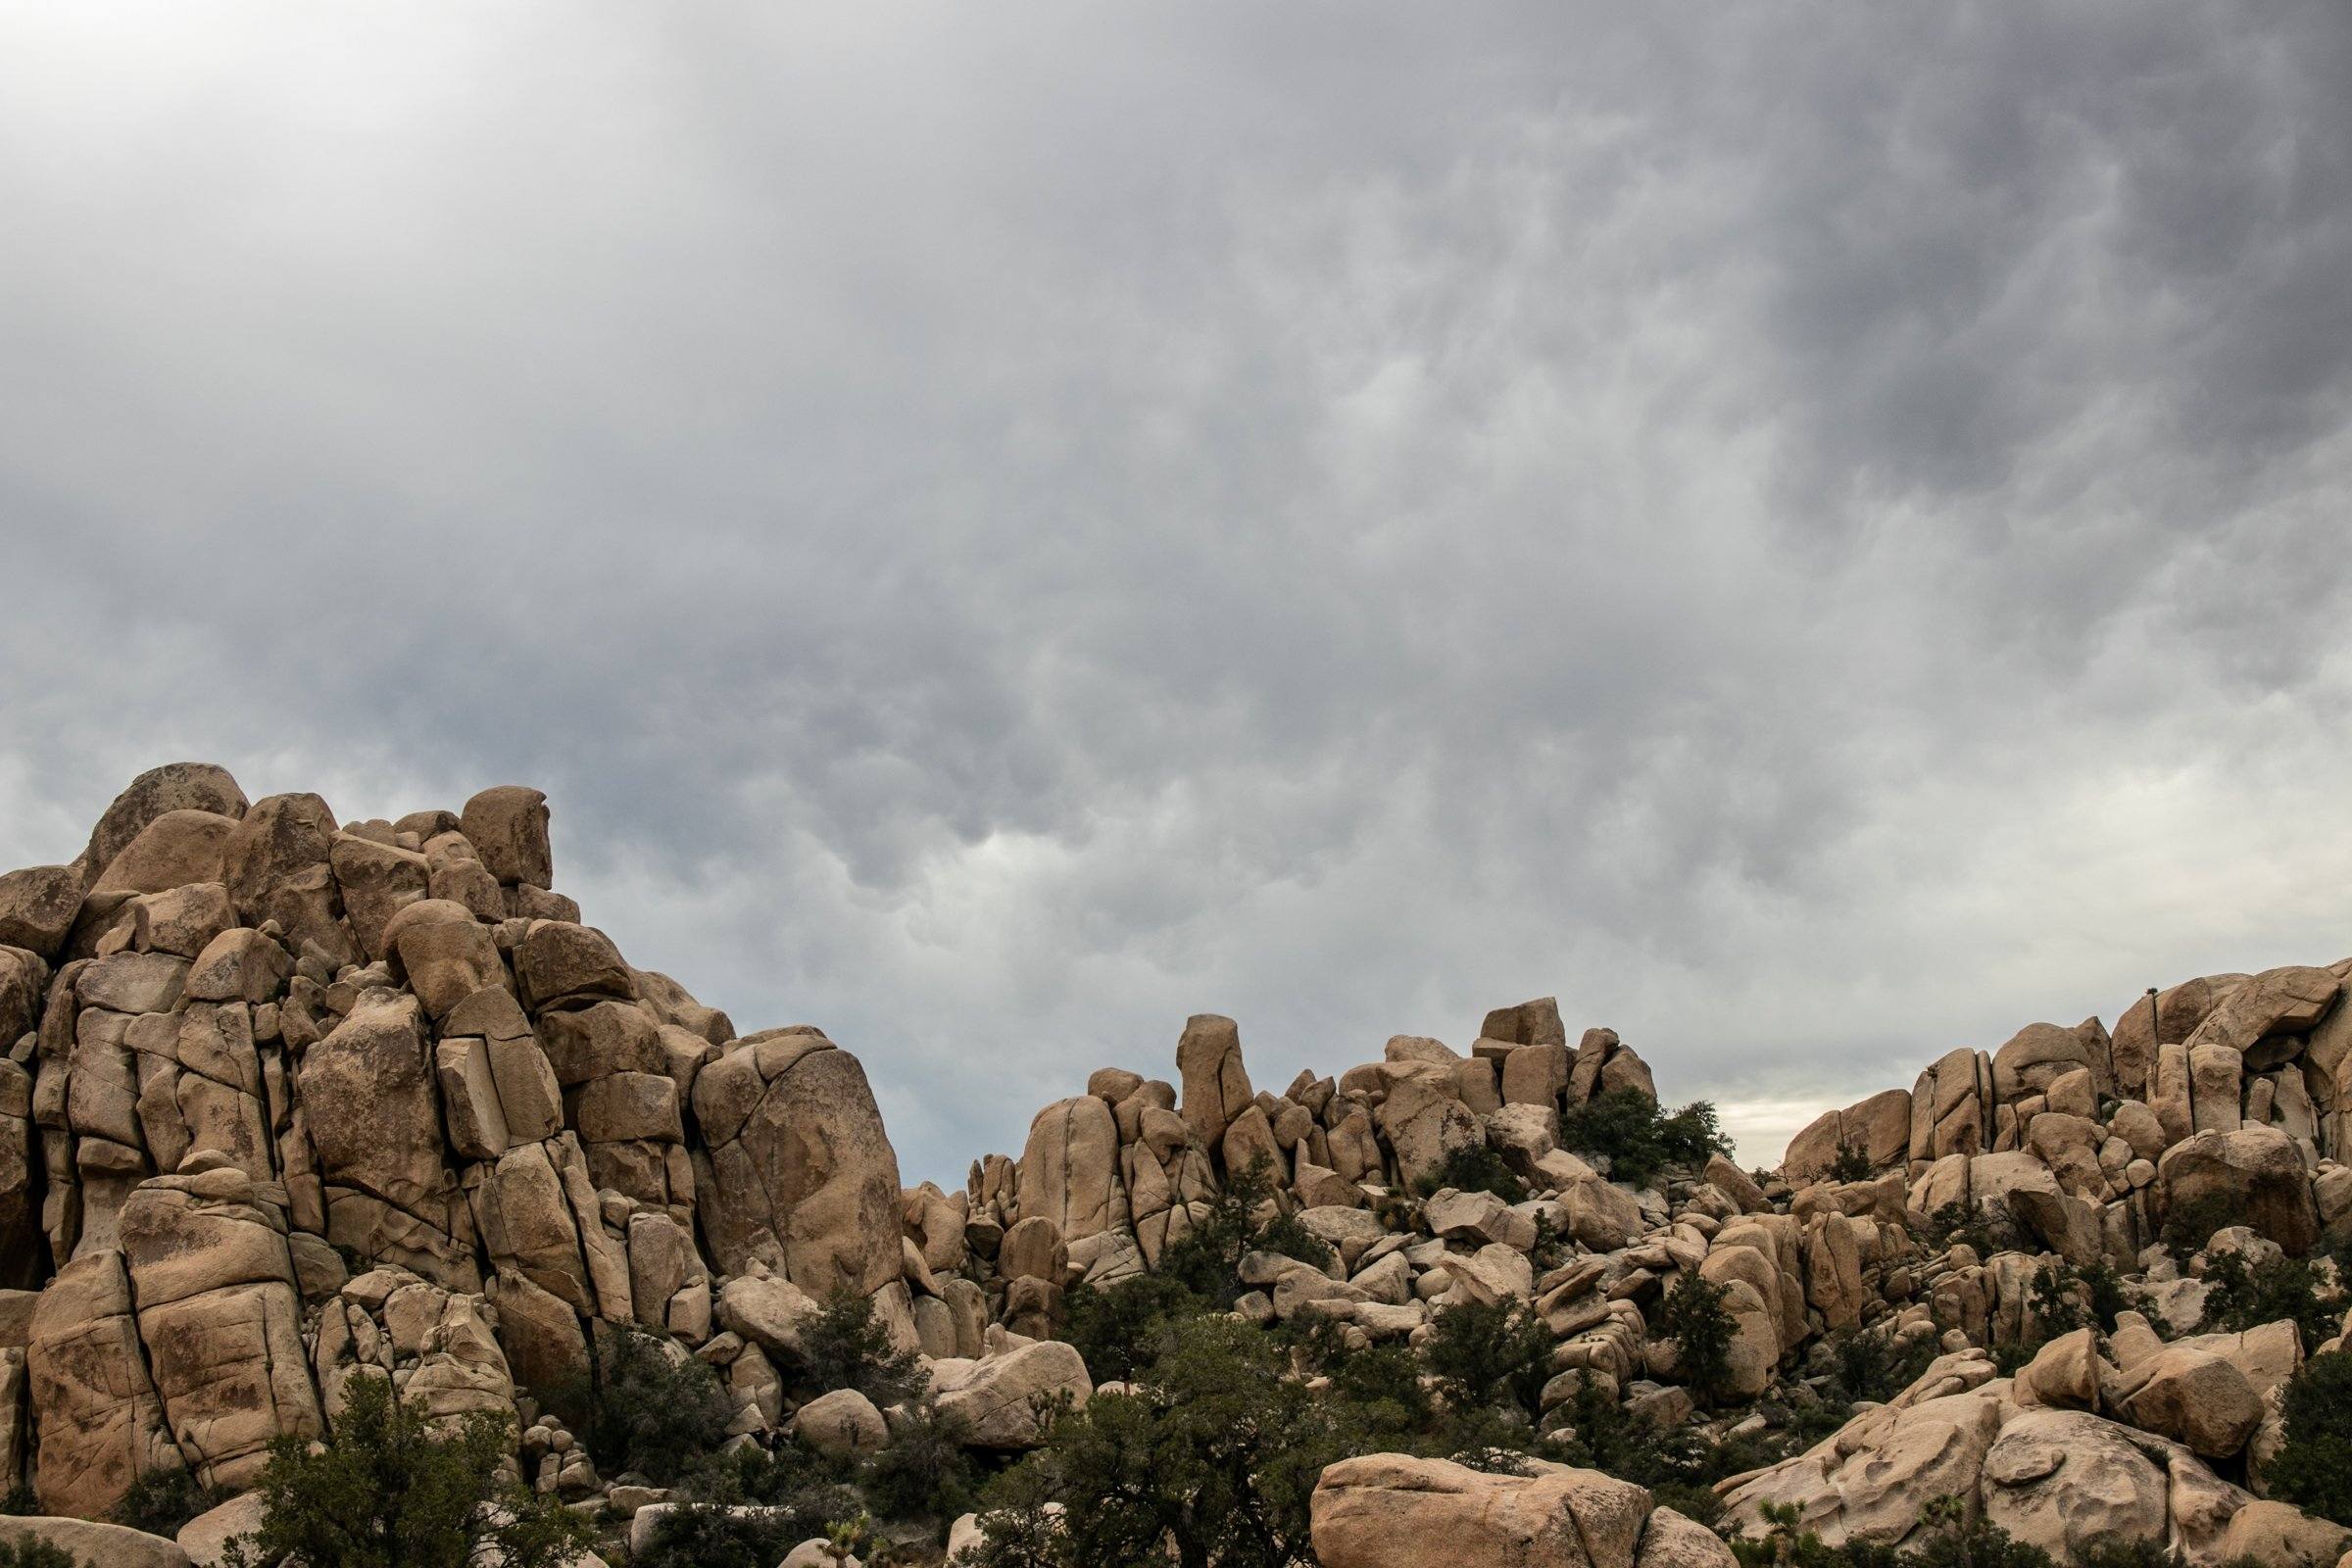 Rock Formations And Plants Against Cloudy Sky